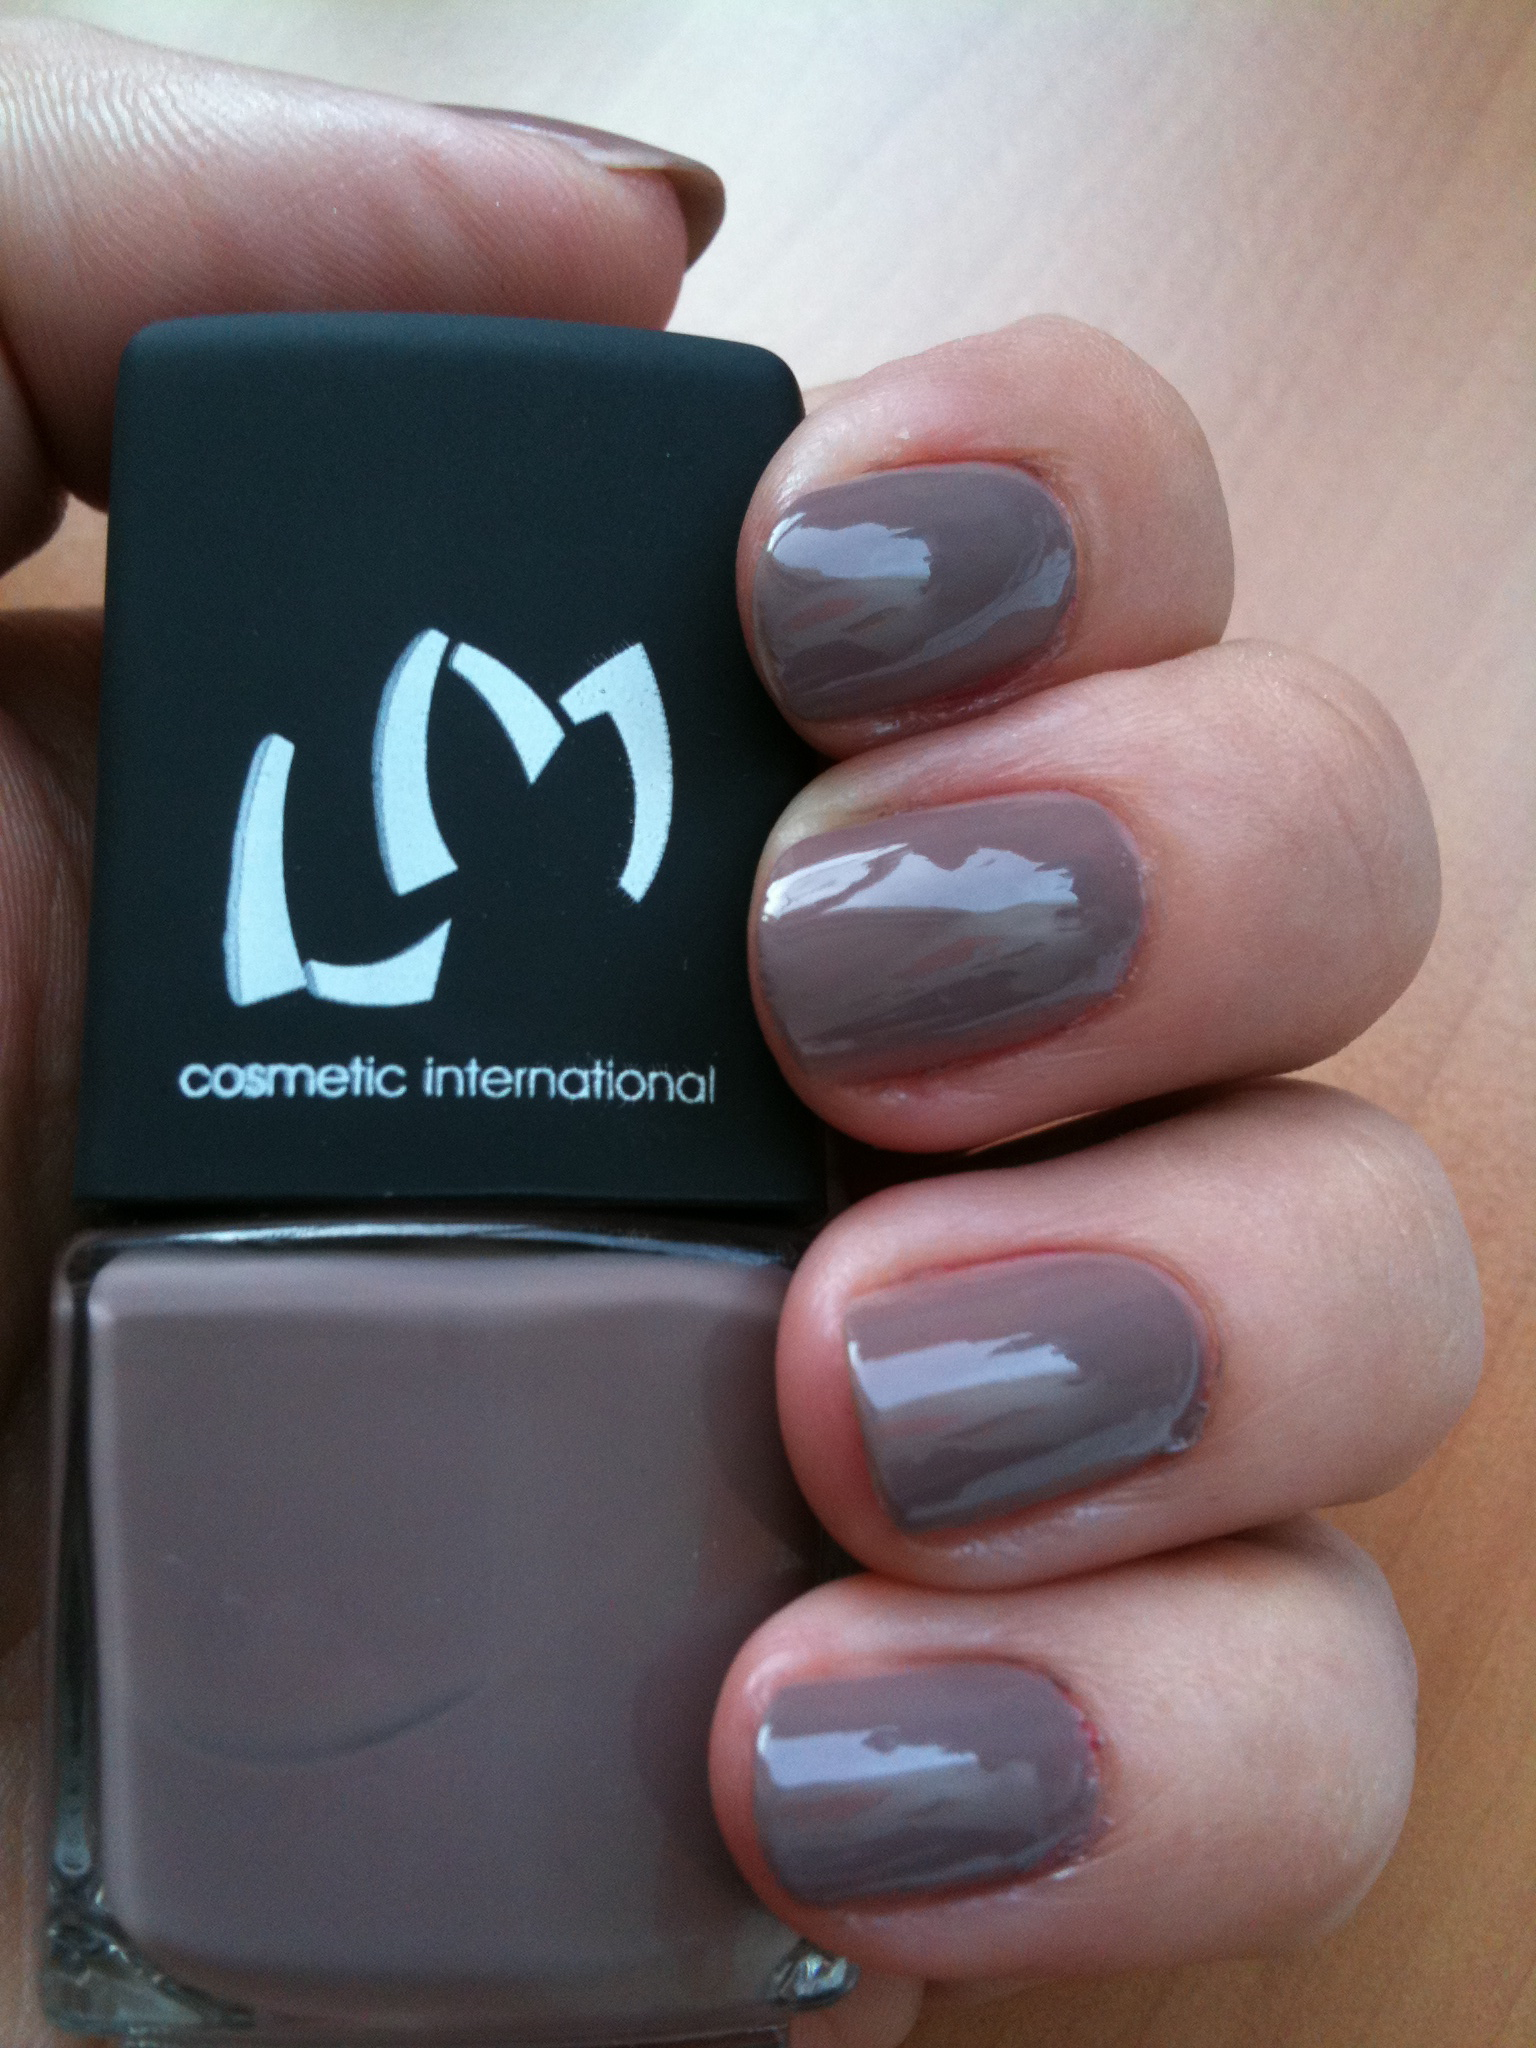 Vernis Nude Taupe LM Cosmetic